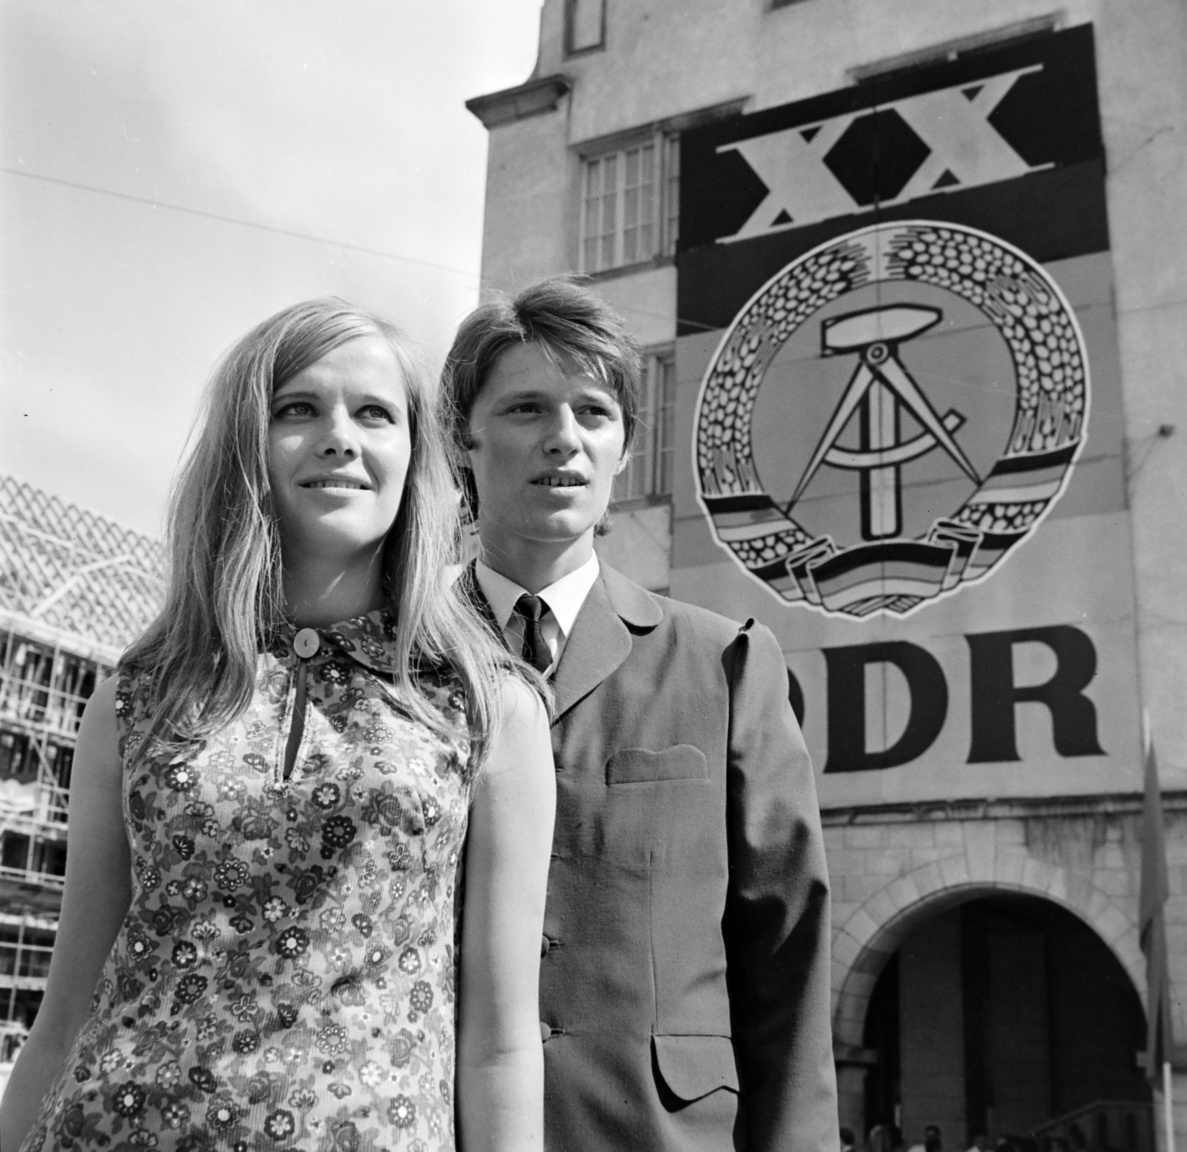 1969 - Optimistic youth at the 20th anniversary of the GDR. The young lady is wearing one of the remarkable achievements of the East German plastic industry, the synthetic fibre dress that released a spray of sparkles upon contact in the dark.